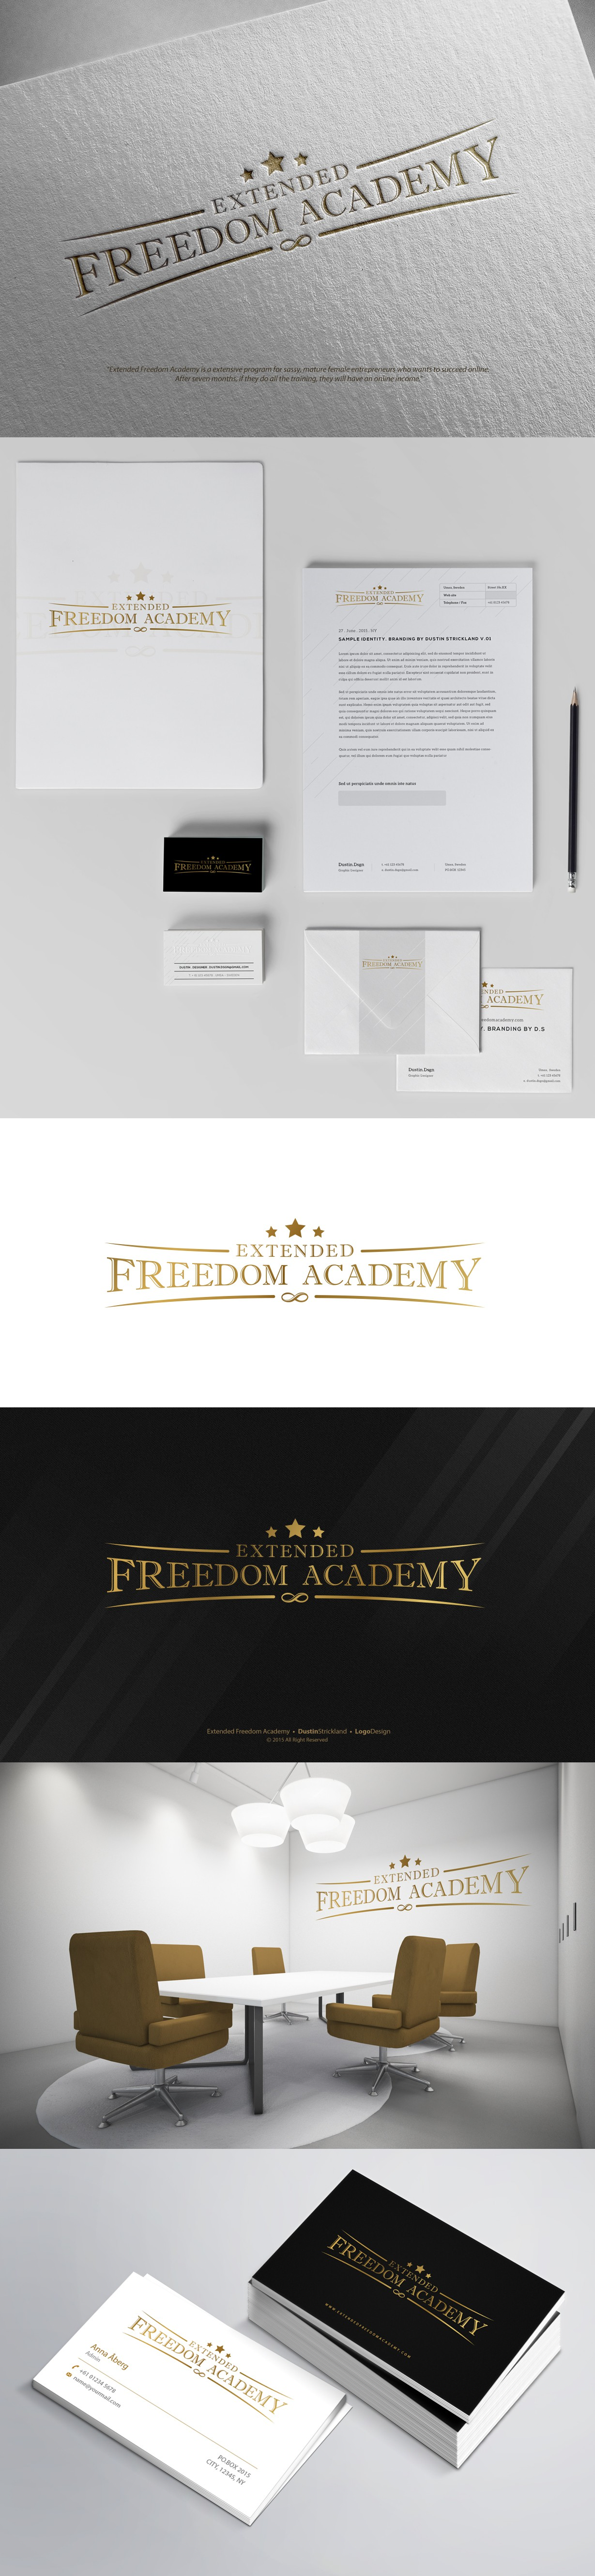 Create a classy beautiful logo for Extended Freedom!